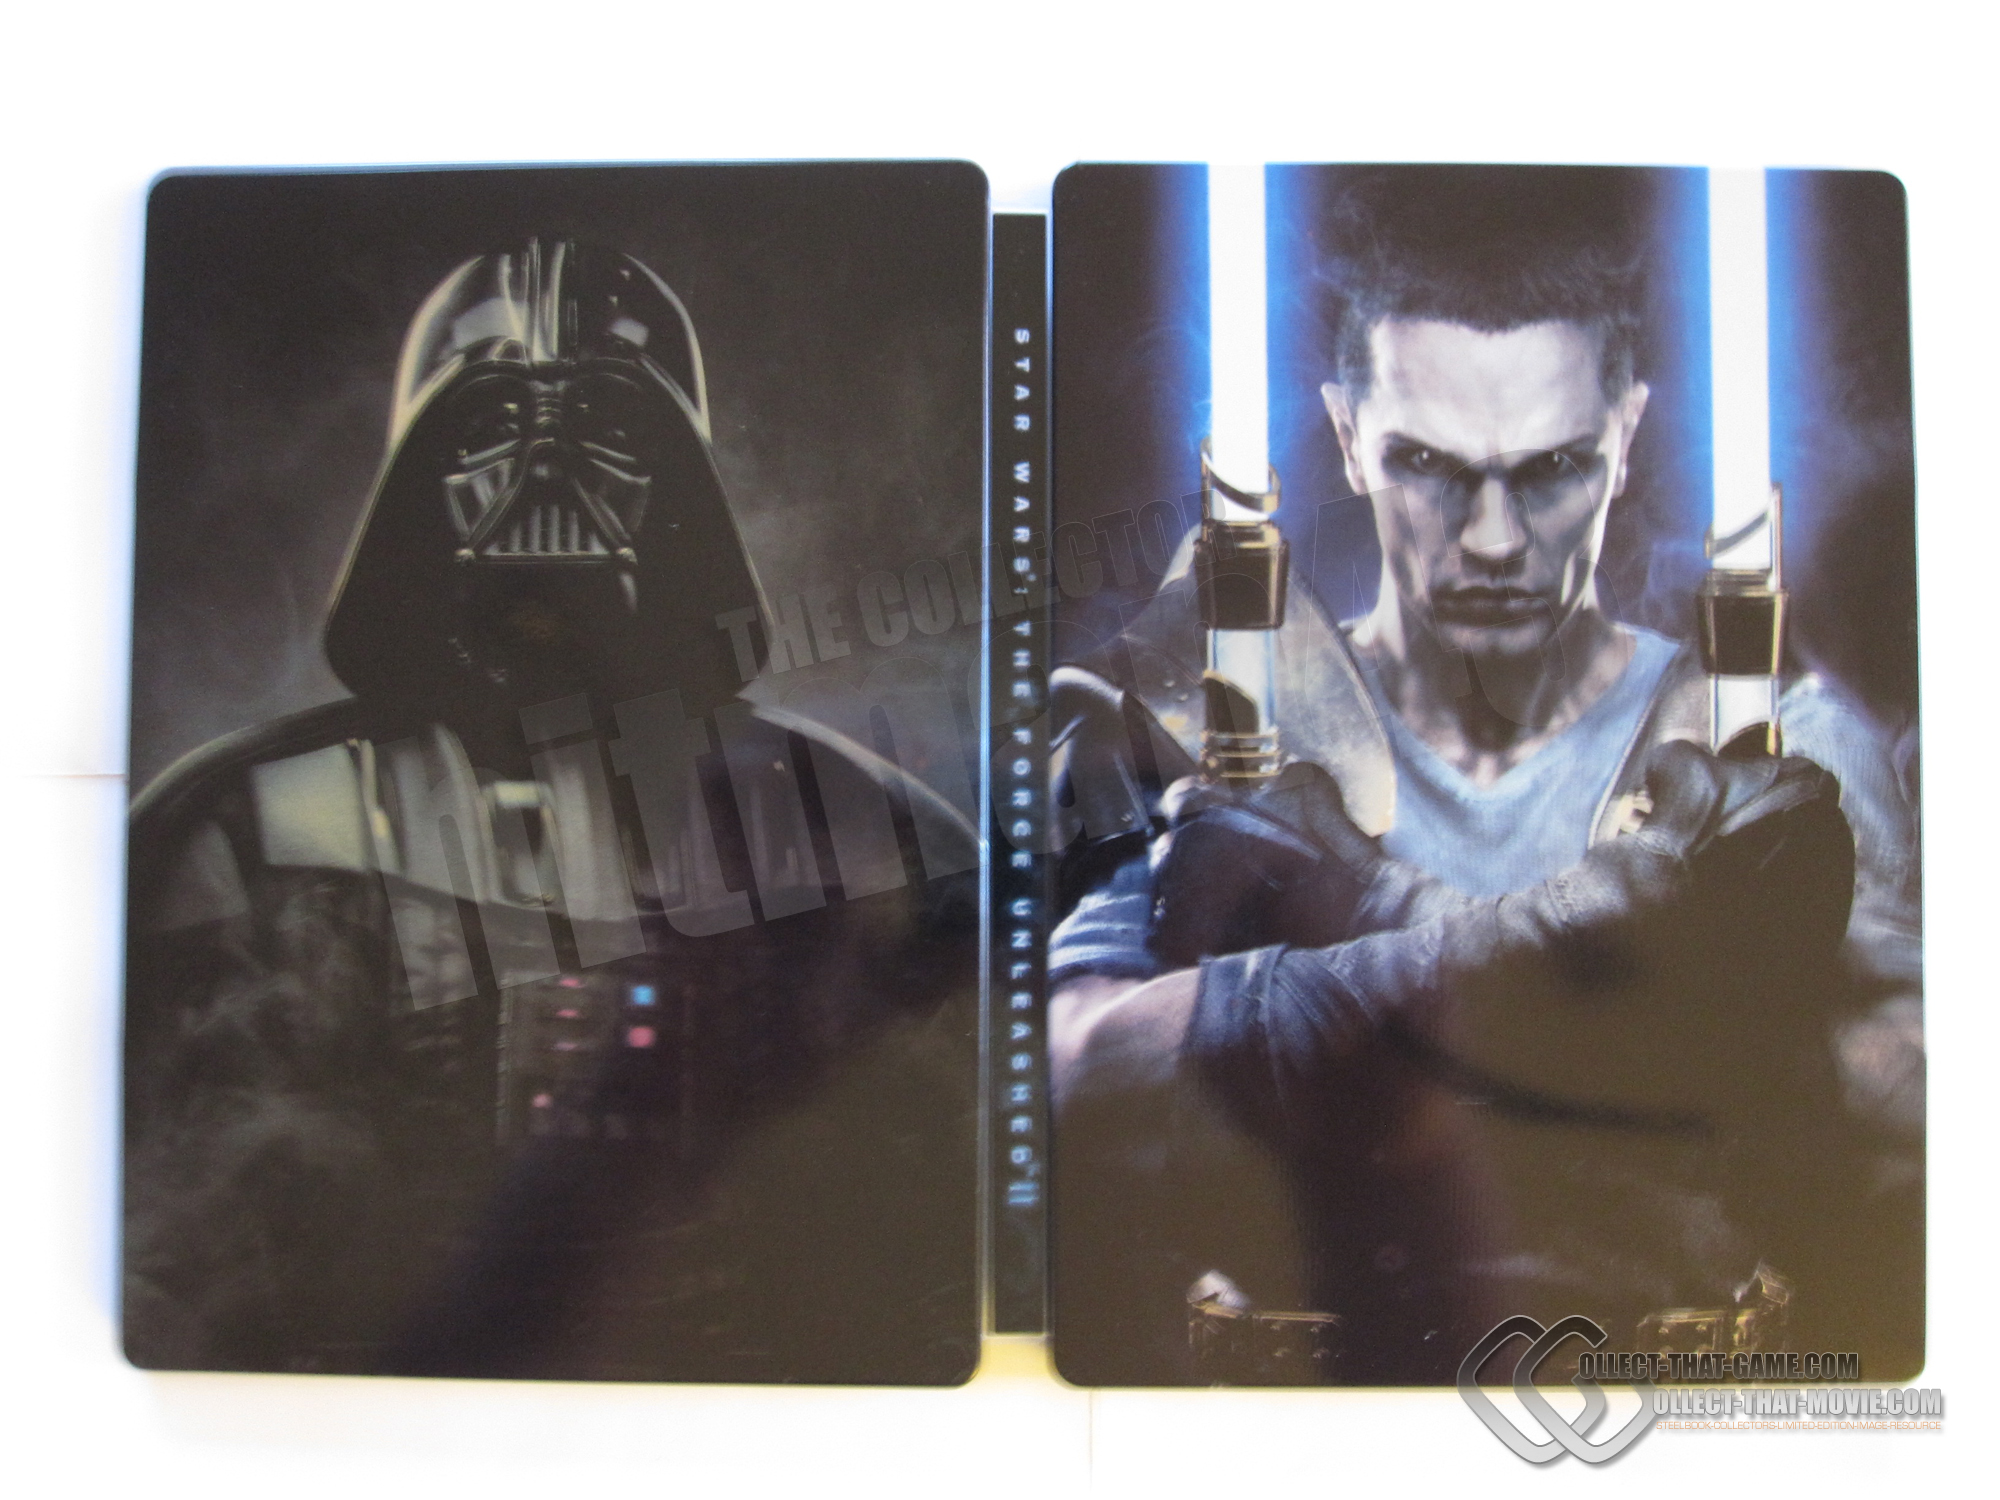 Star Wars Force Unleashed 2 Cheats Xbox 360 Invincibility